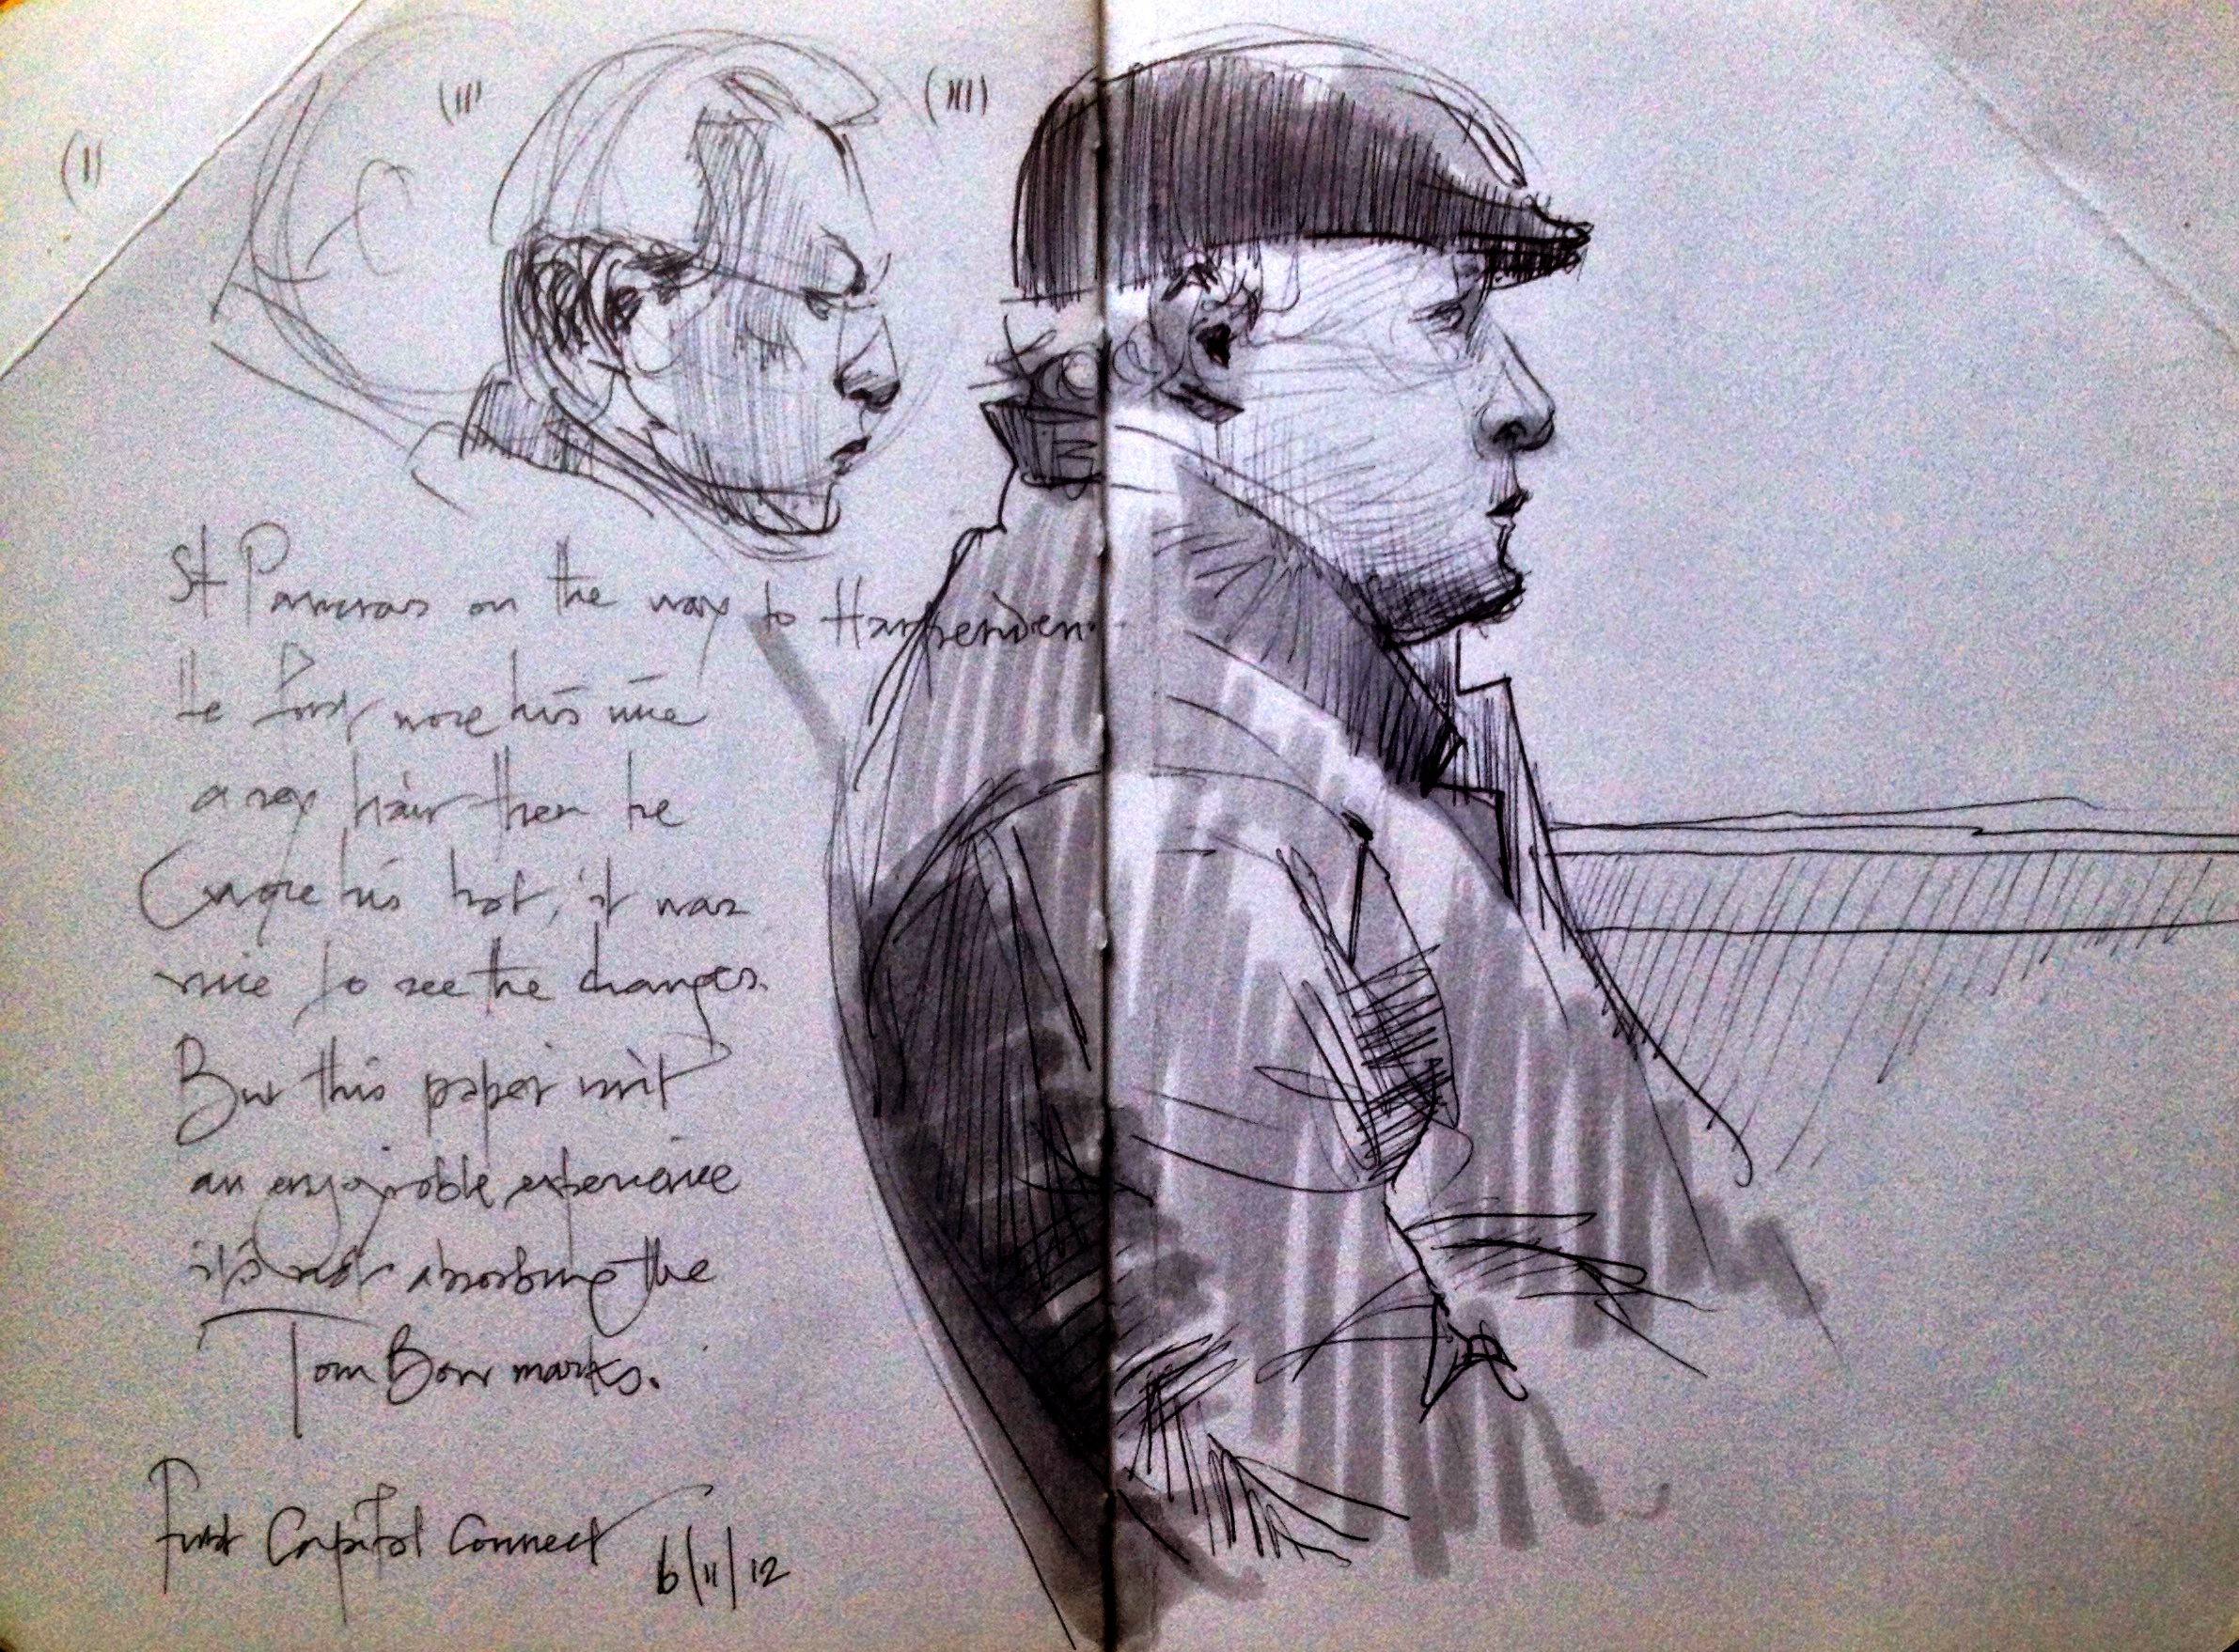 3 sketches of the same man on the train, one where he wears a hat